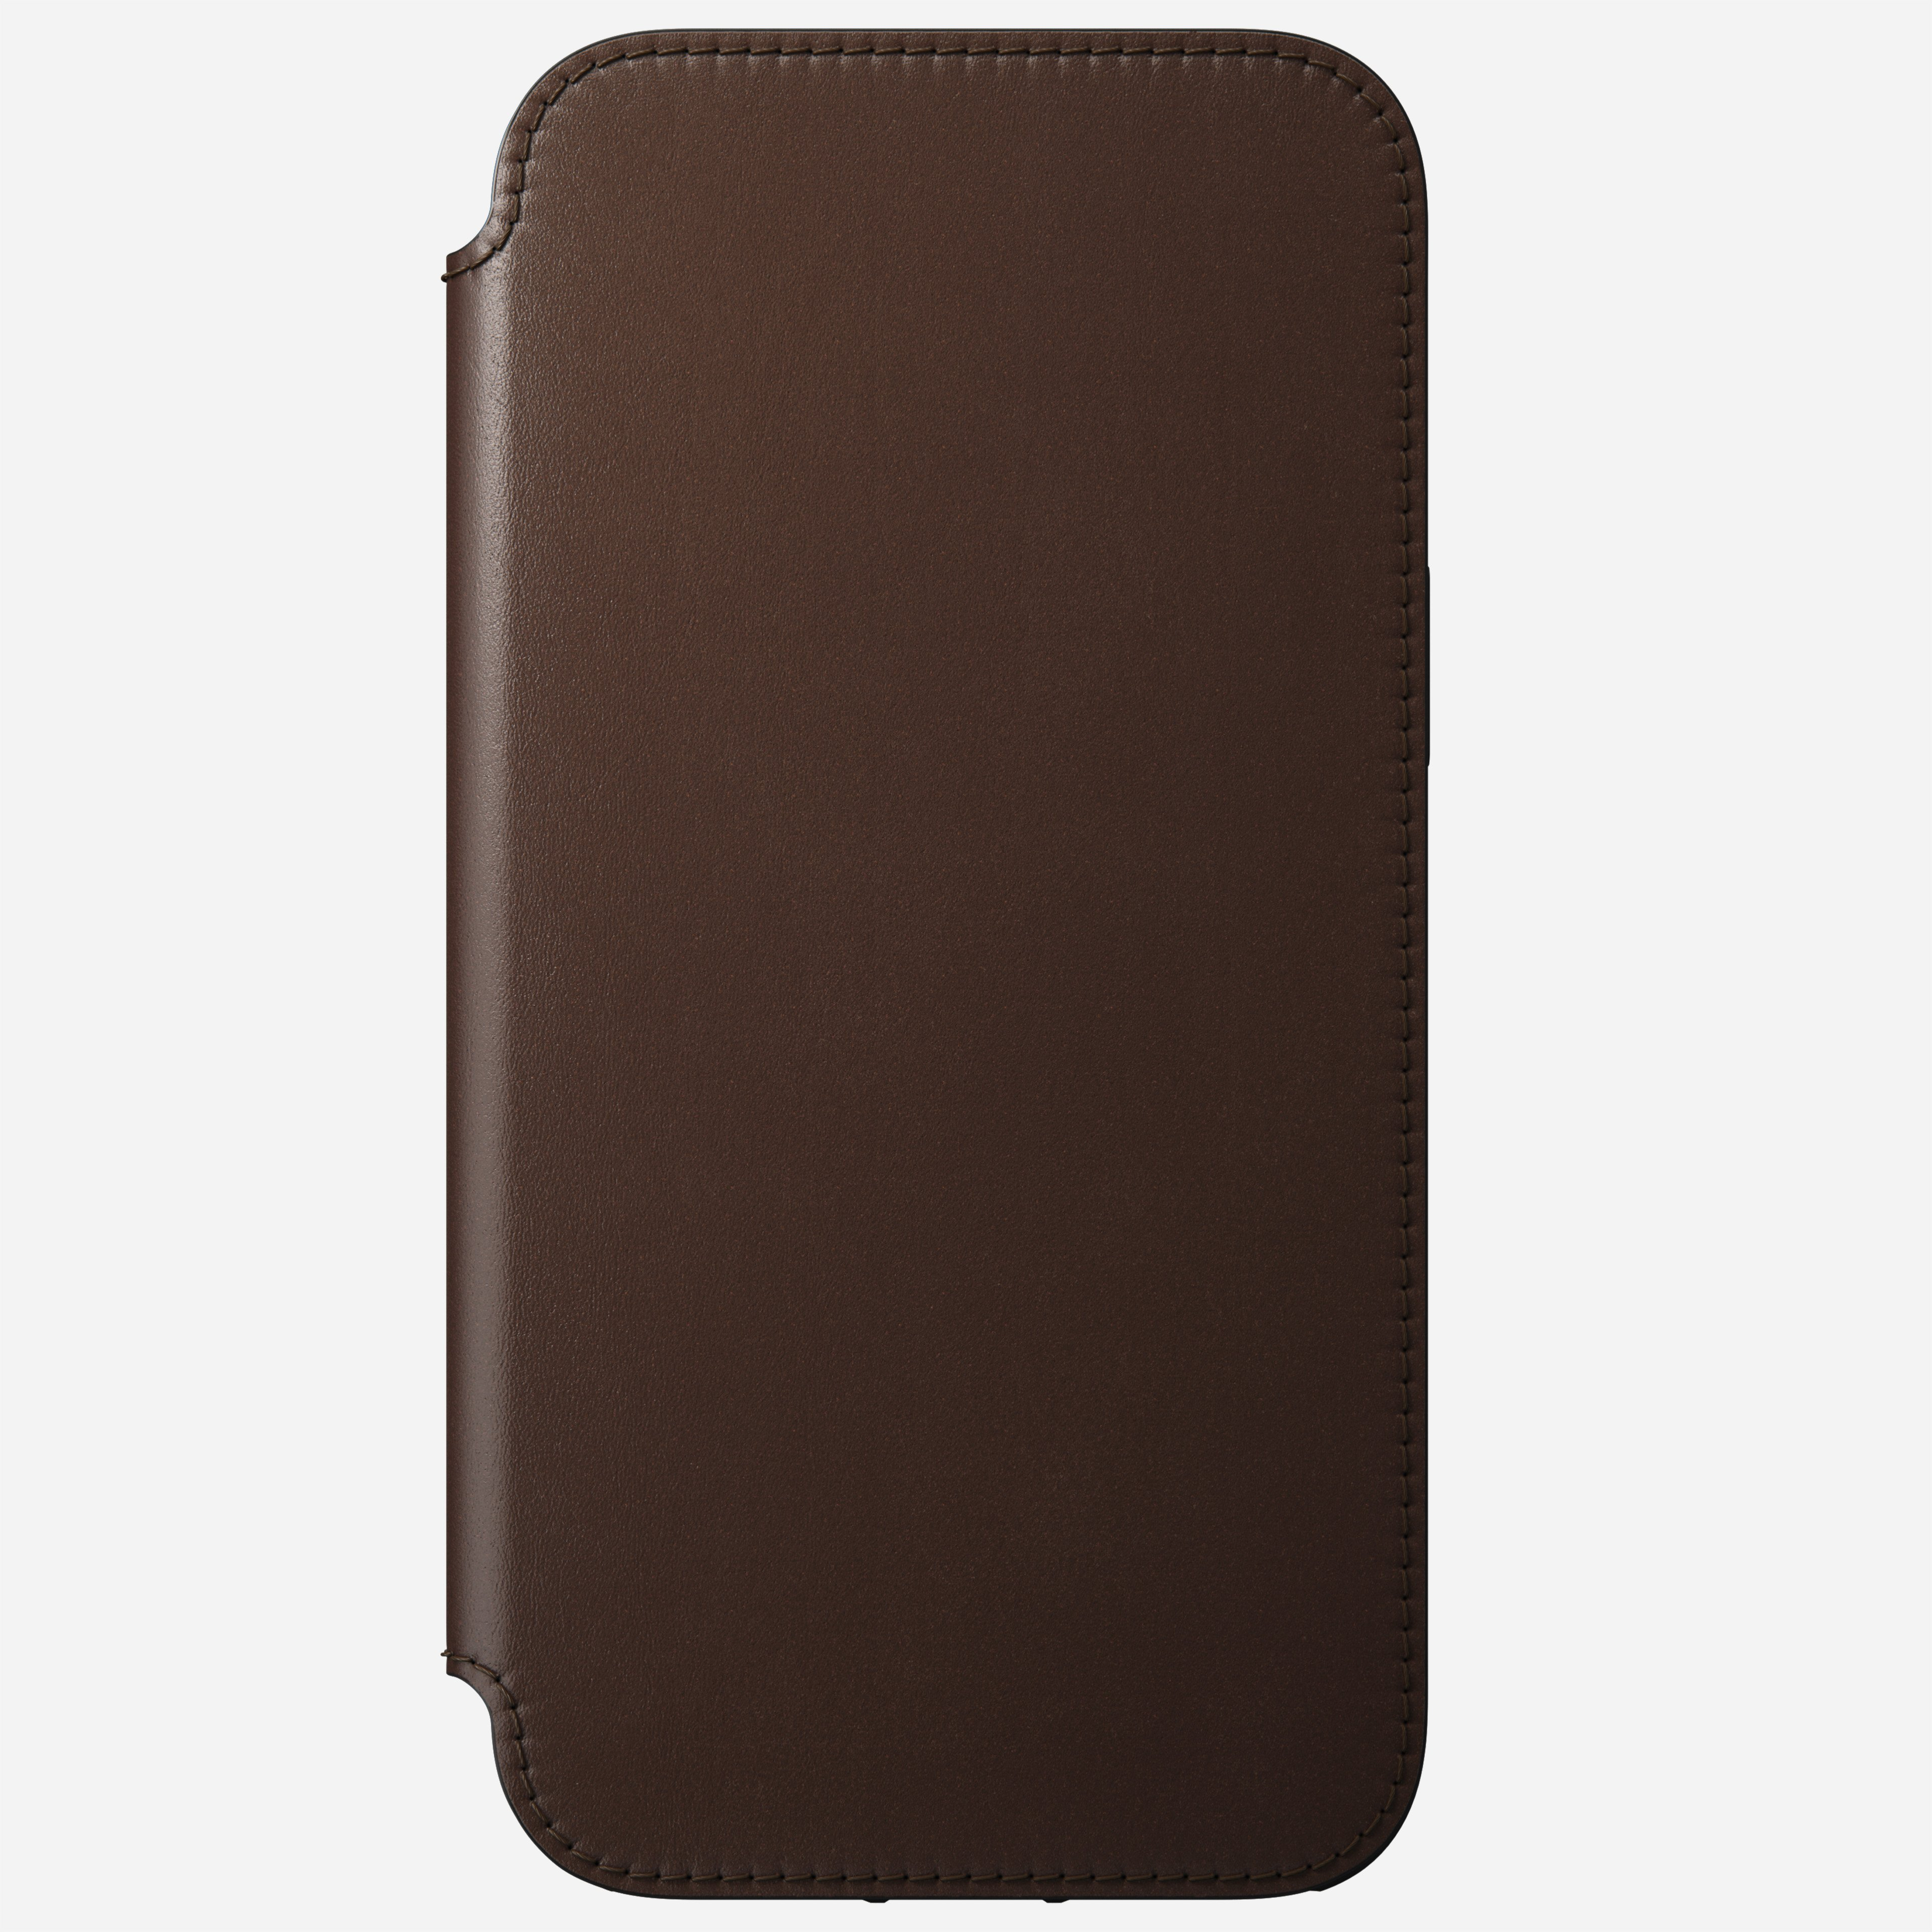 Rugged folio magsafe horween leather rustic brown iphone 12 pro max